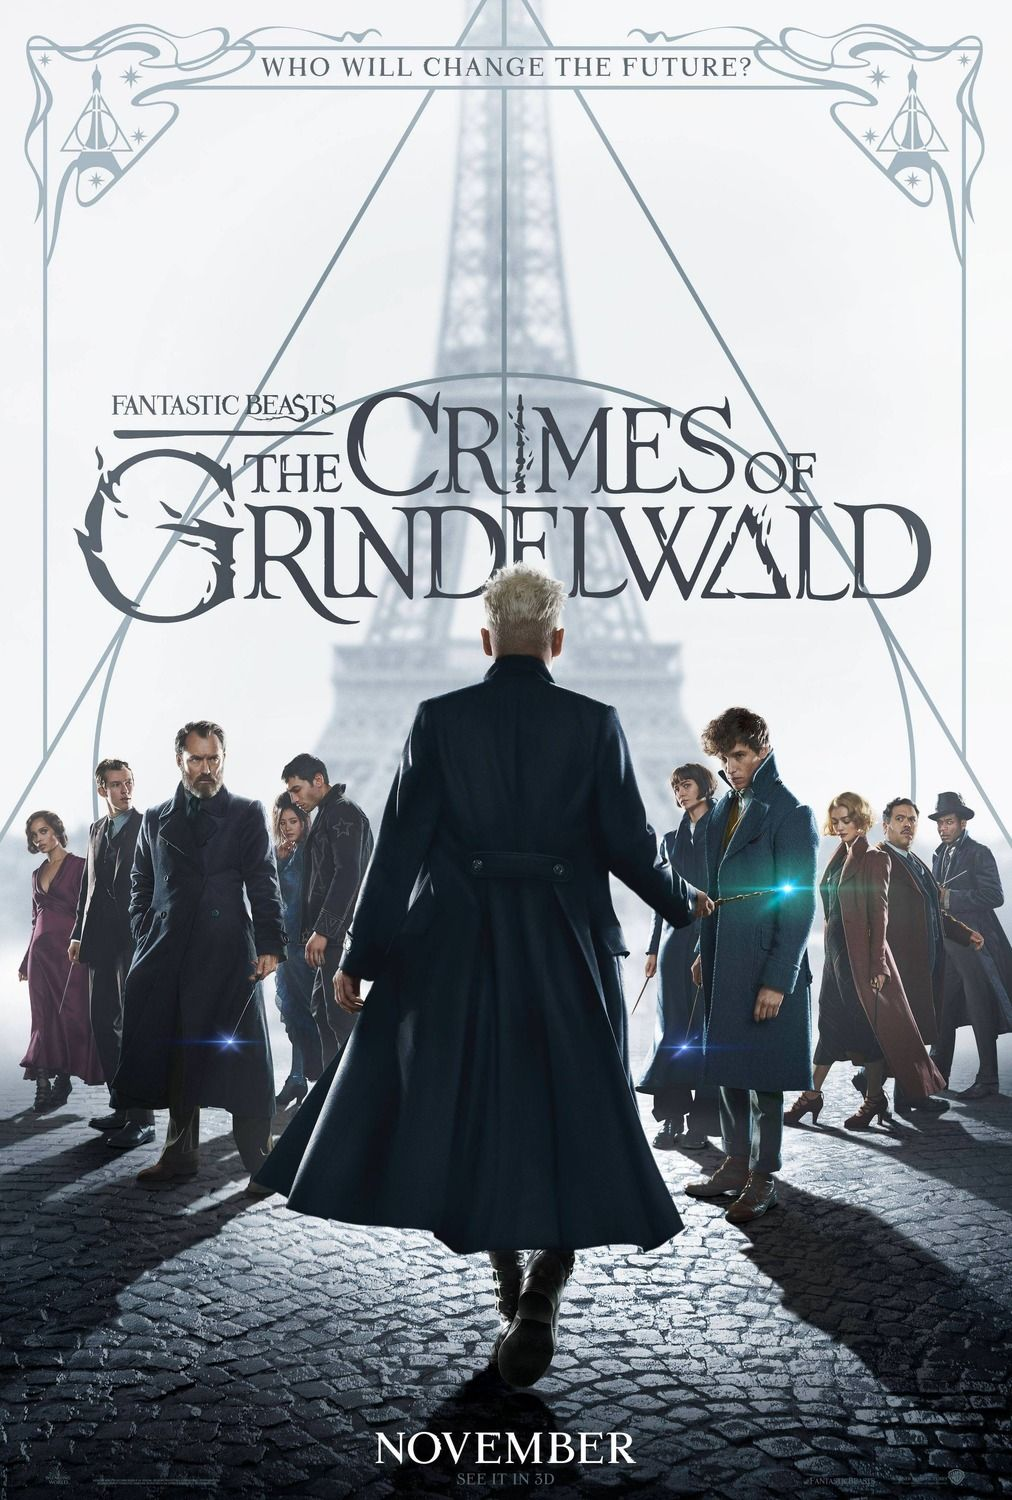 Return To The Main Poster Page For Fantastic Beasts The Crimes Of